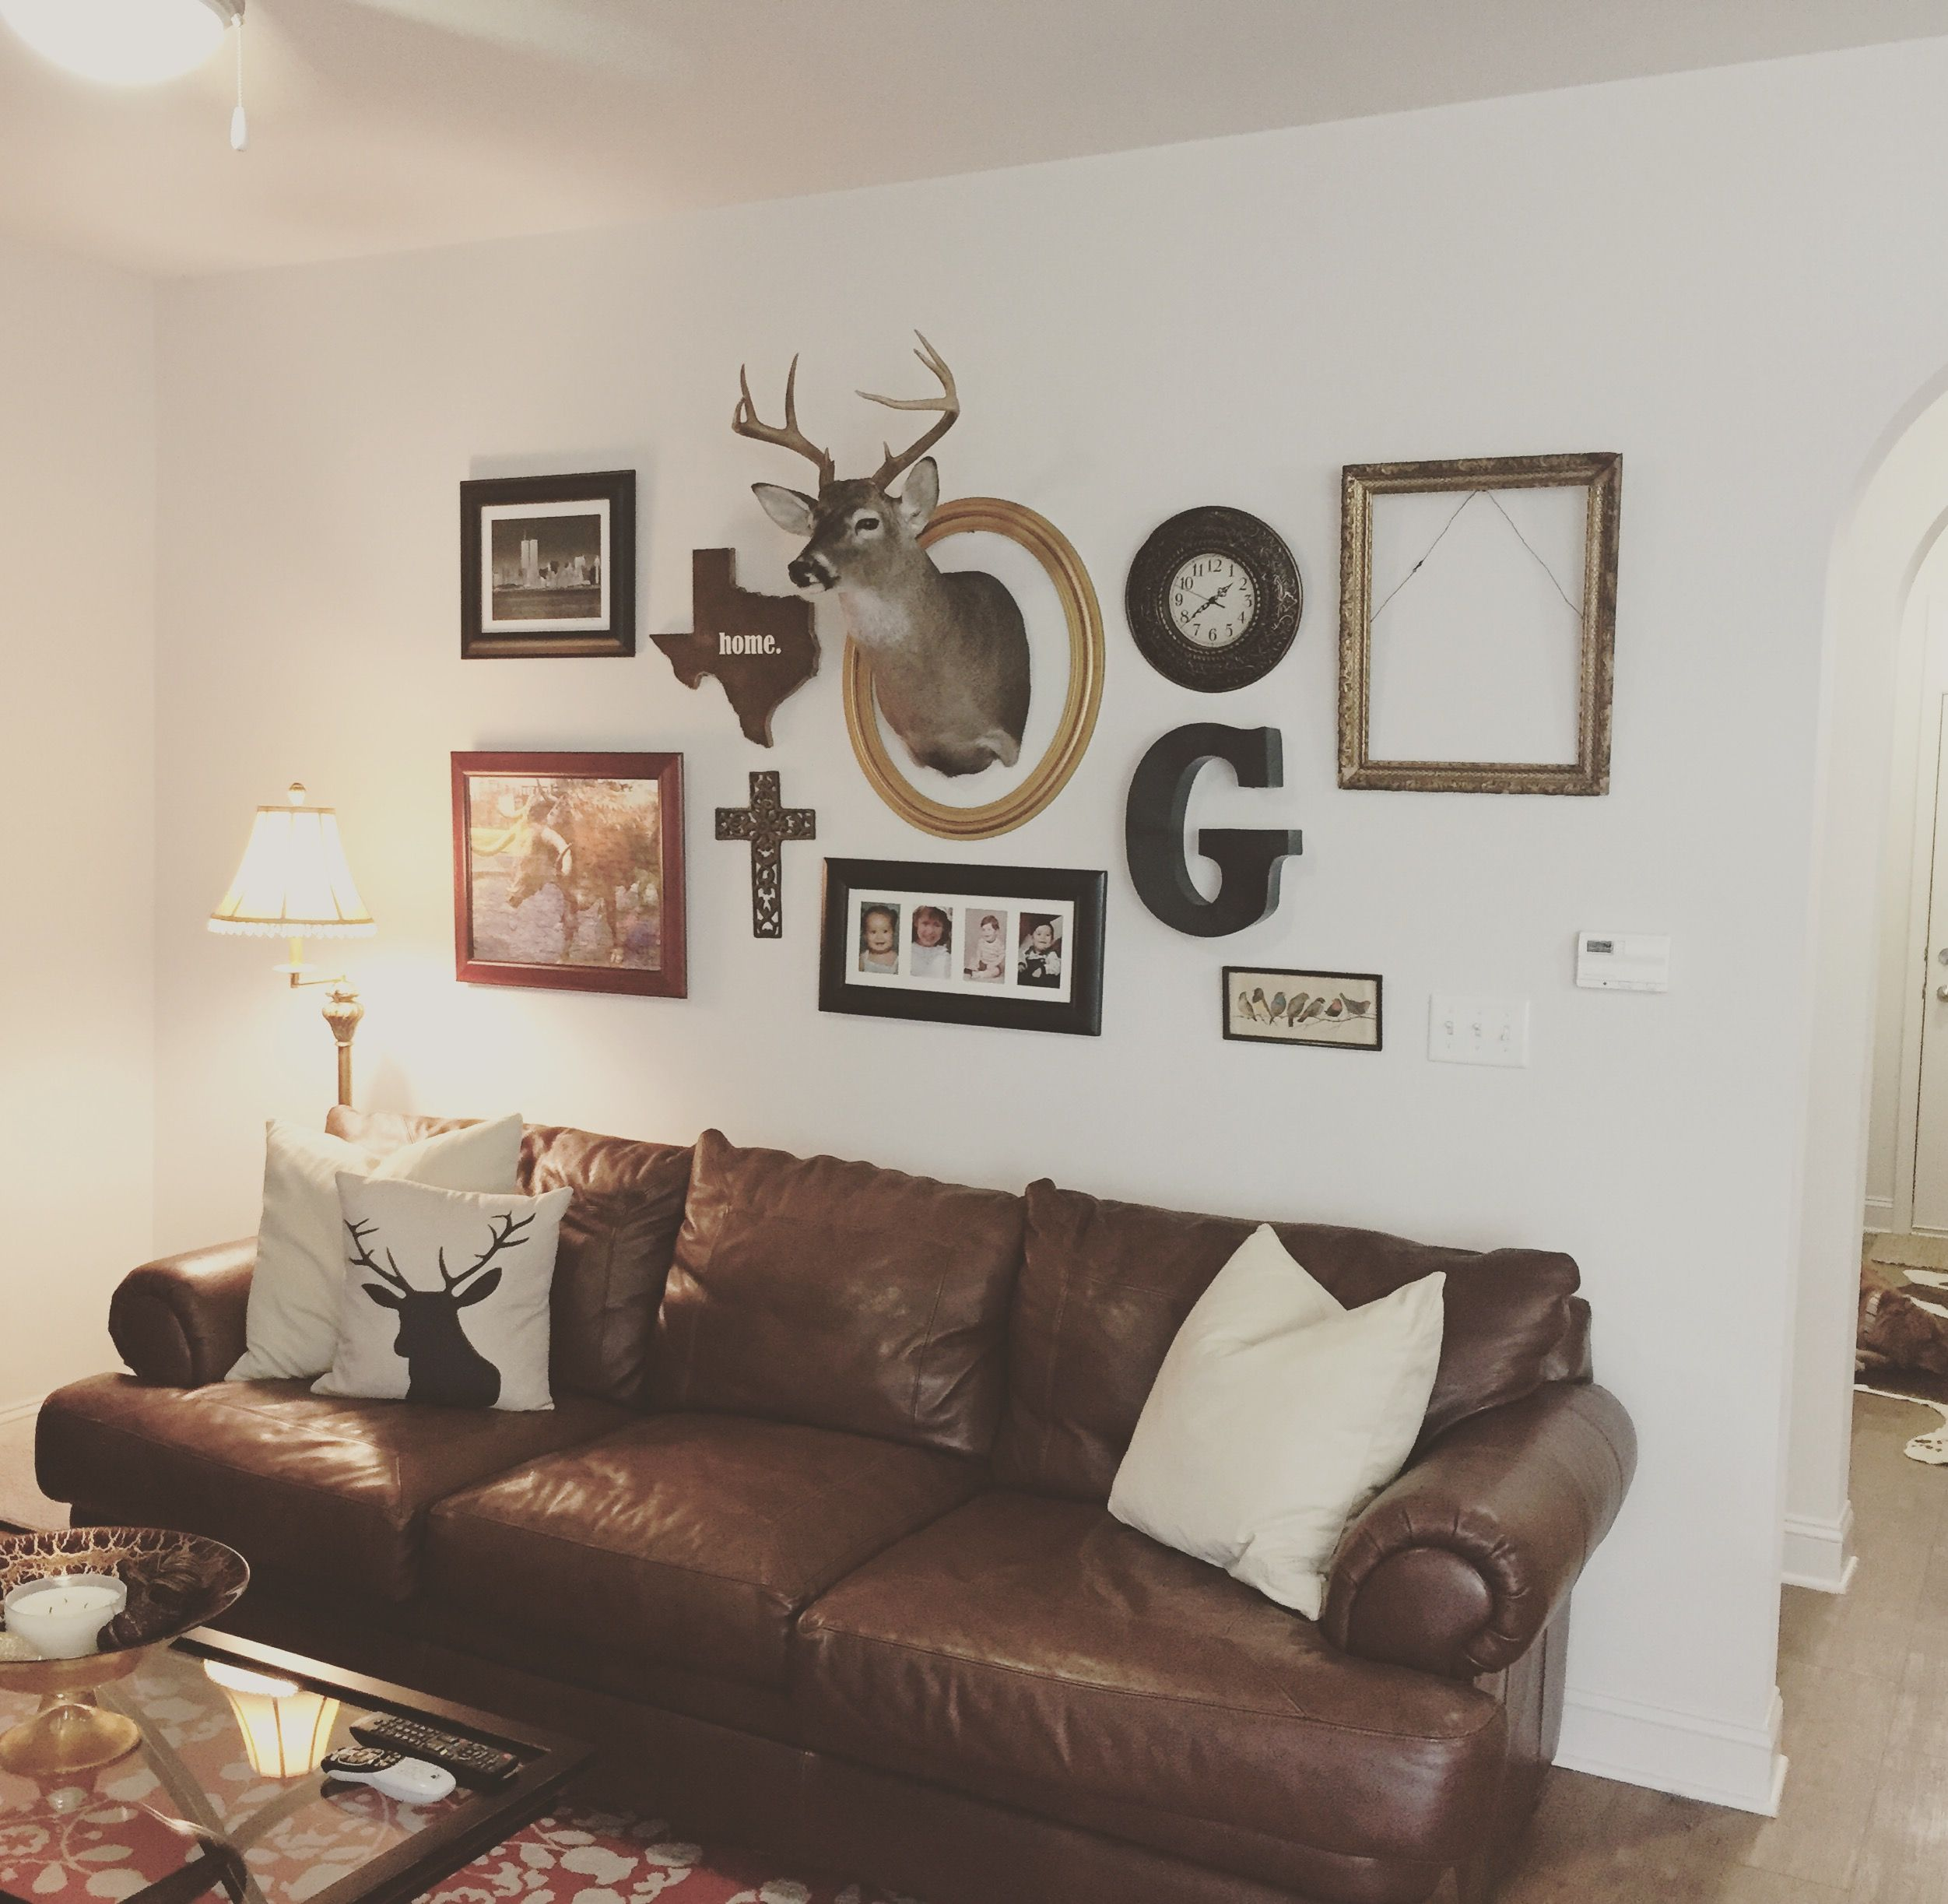 Eclectic Wall Decor Using Deer Head Deerhead Funwall Texas